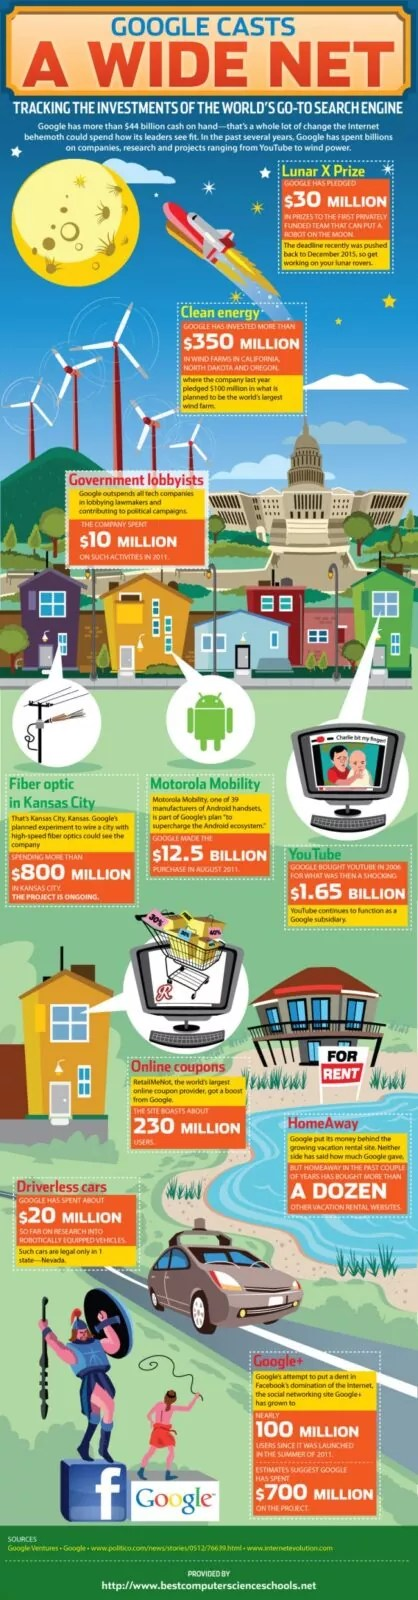 google casts wide net e1345620453891 - Google's Reach is Growing Wider [Infographic]